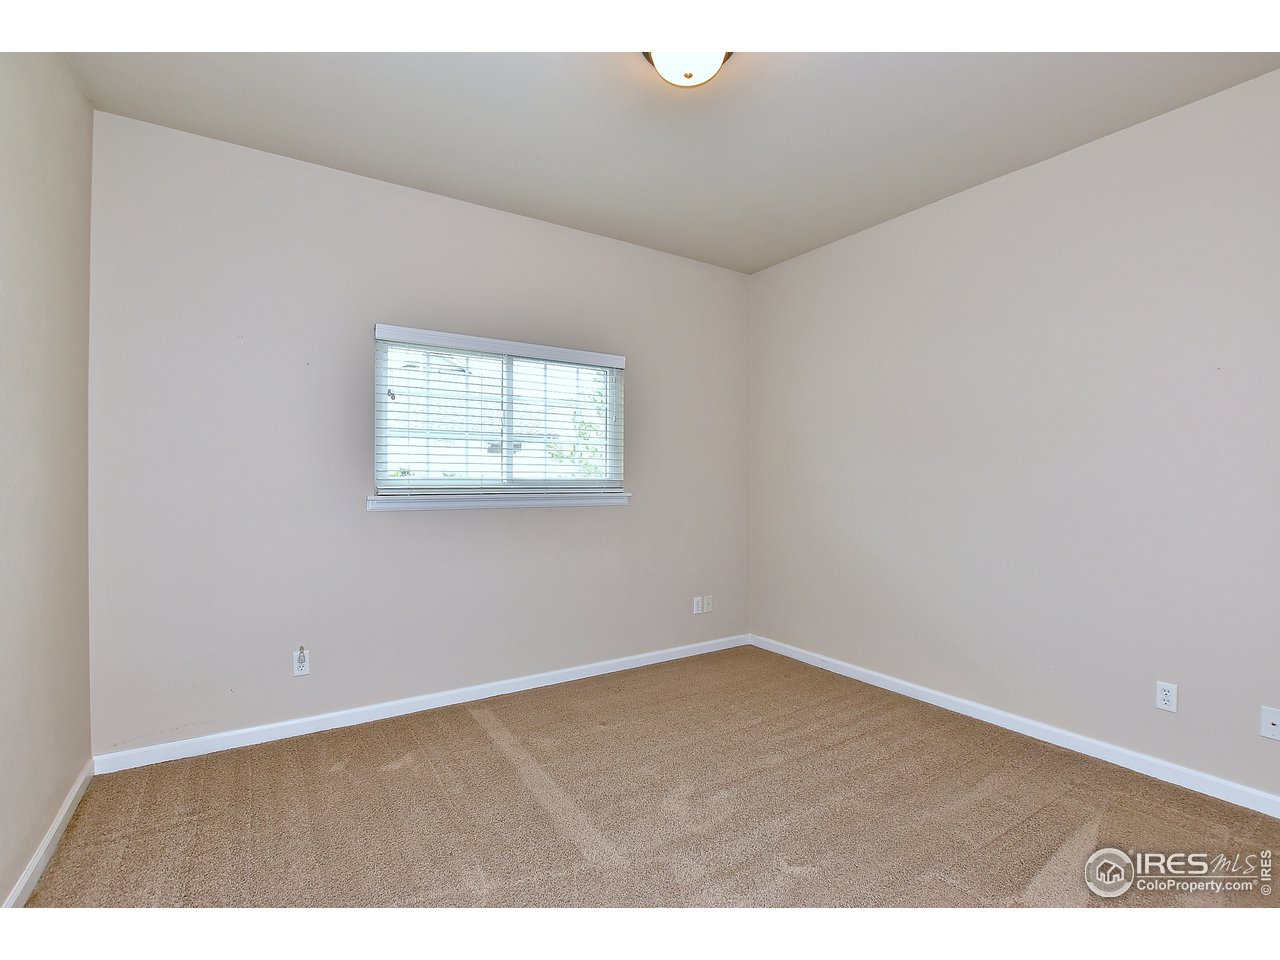 Spacious Master suite on main level